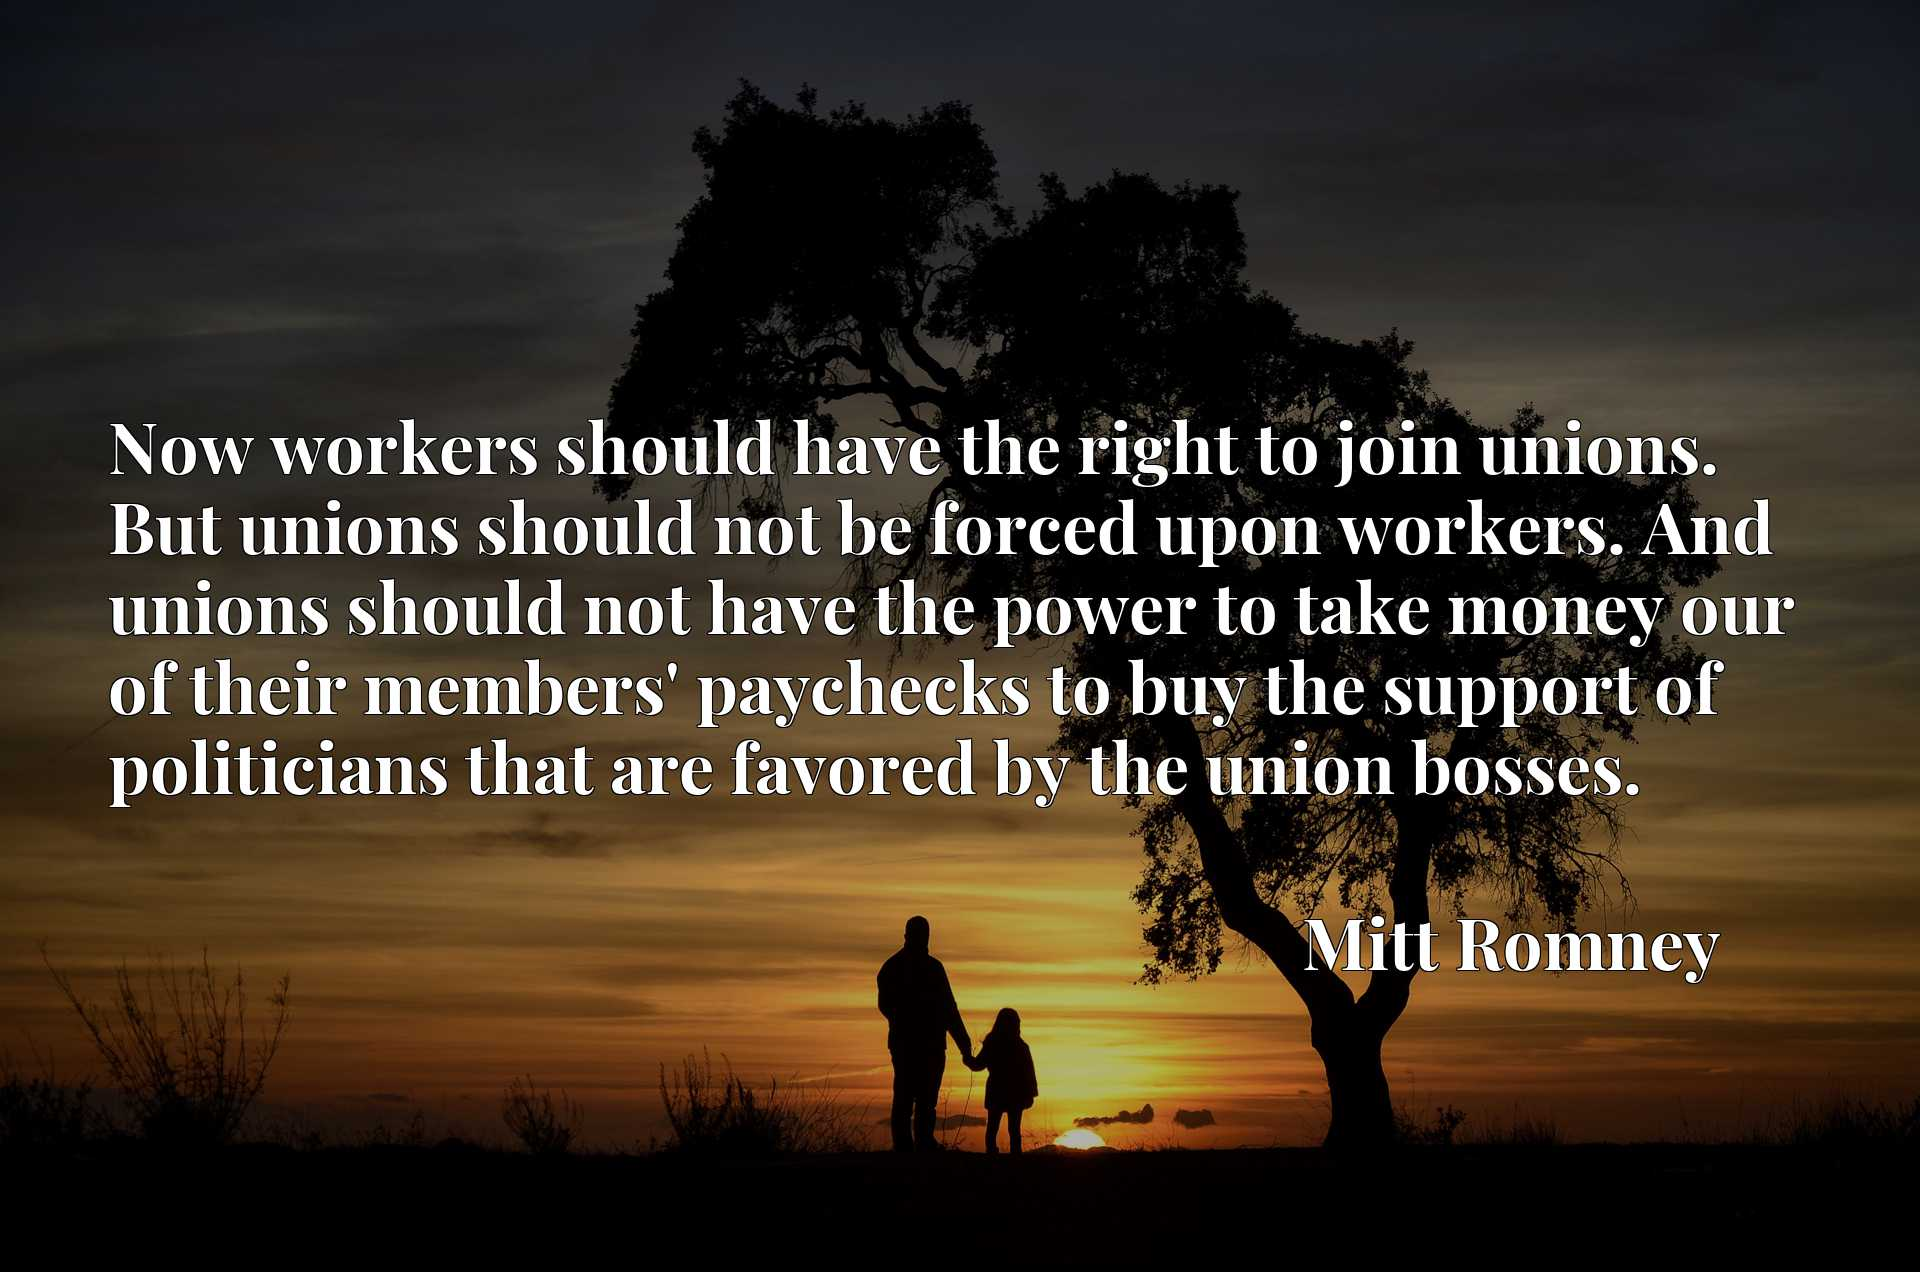 Now workers should have the right to join unions. But unions should not be forced upon workers. And unions should not have the power to take money our of their members' paychecks to buy the support of politicians that are favored by the union bosses.